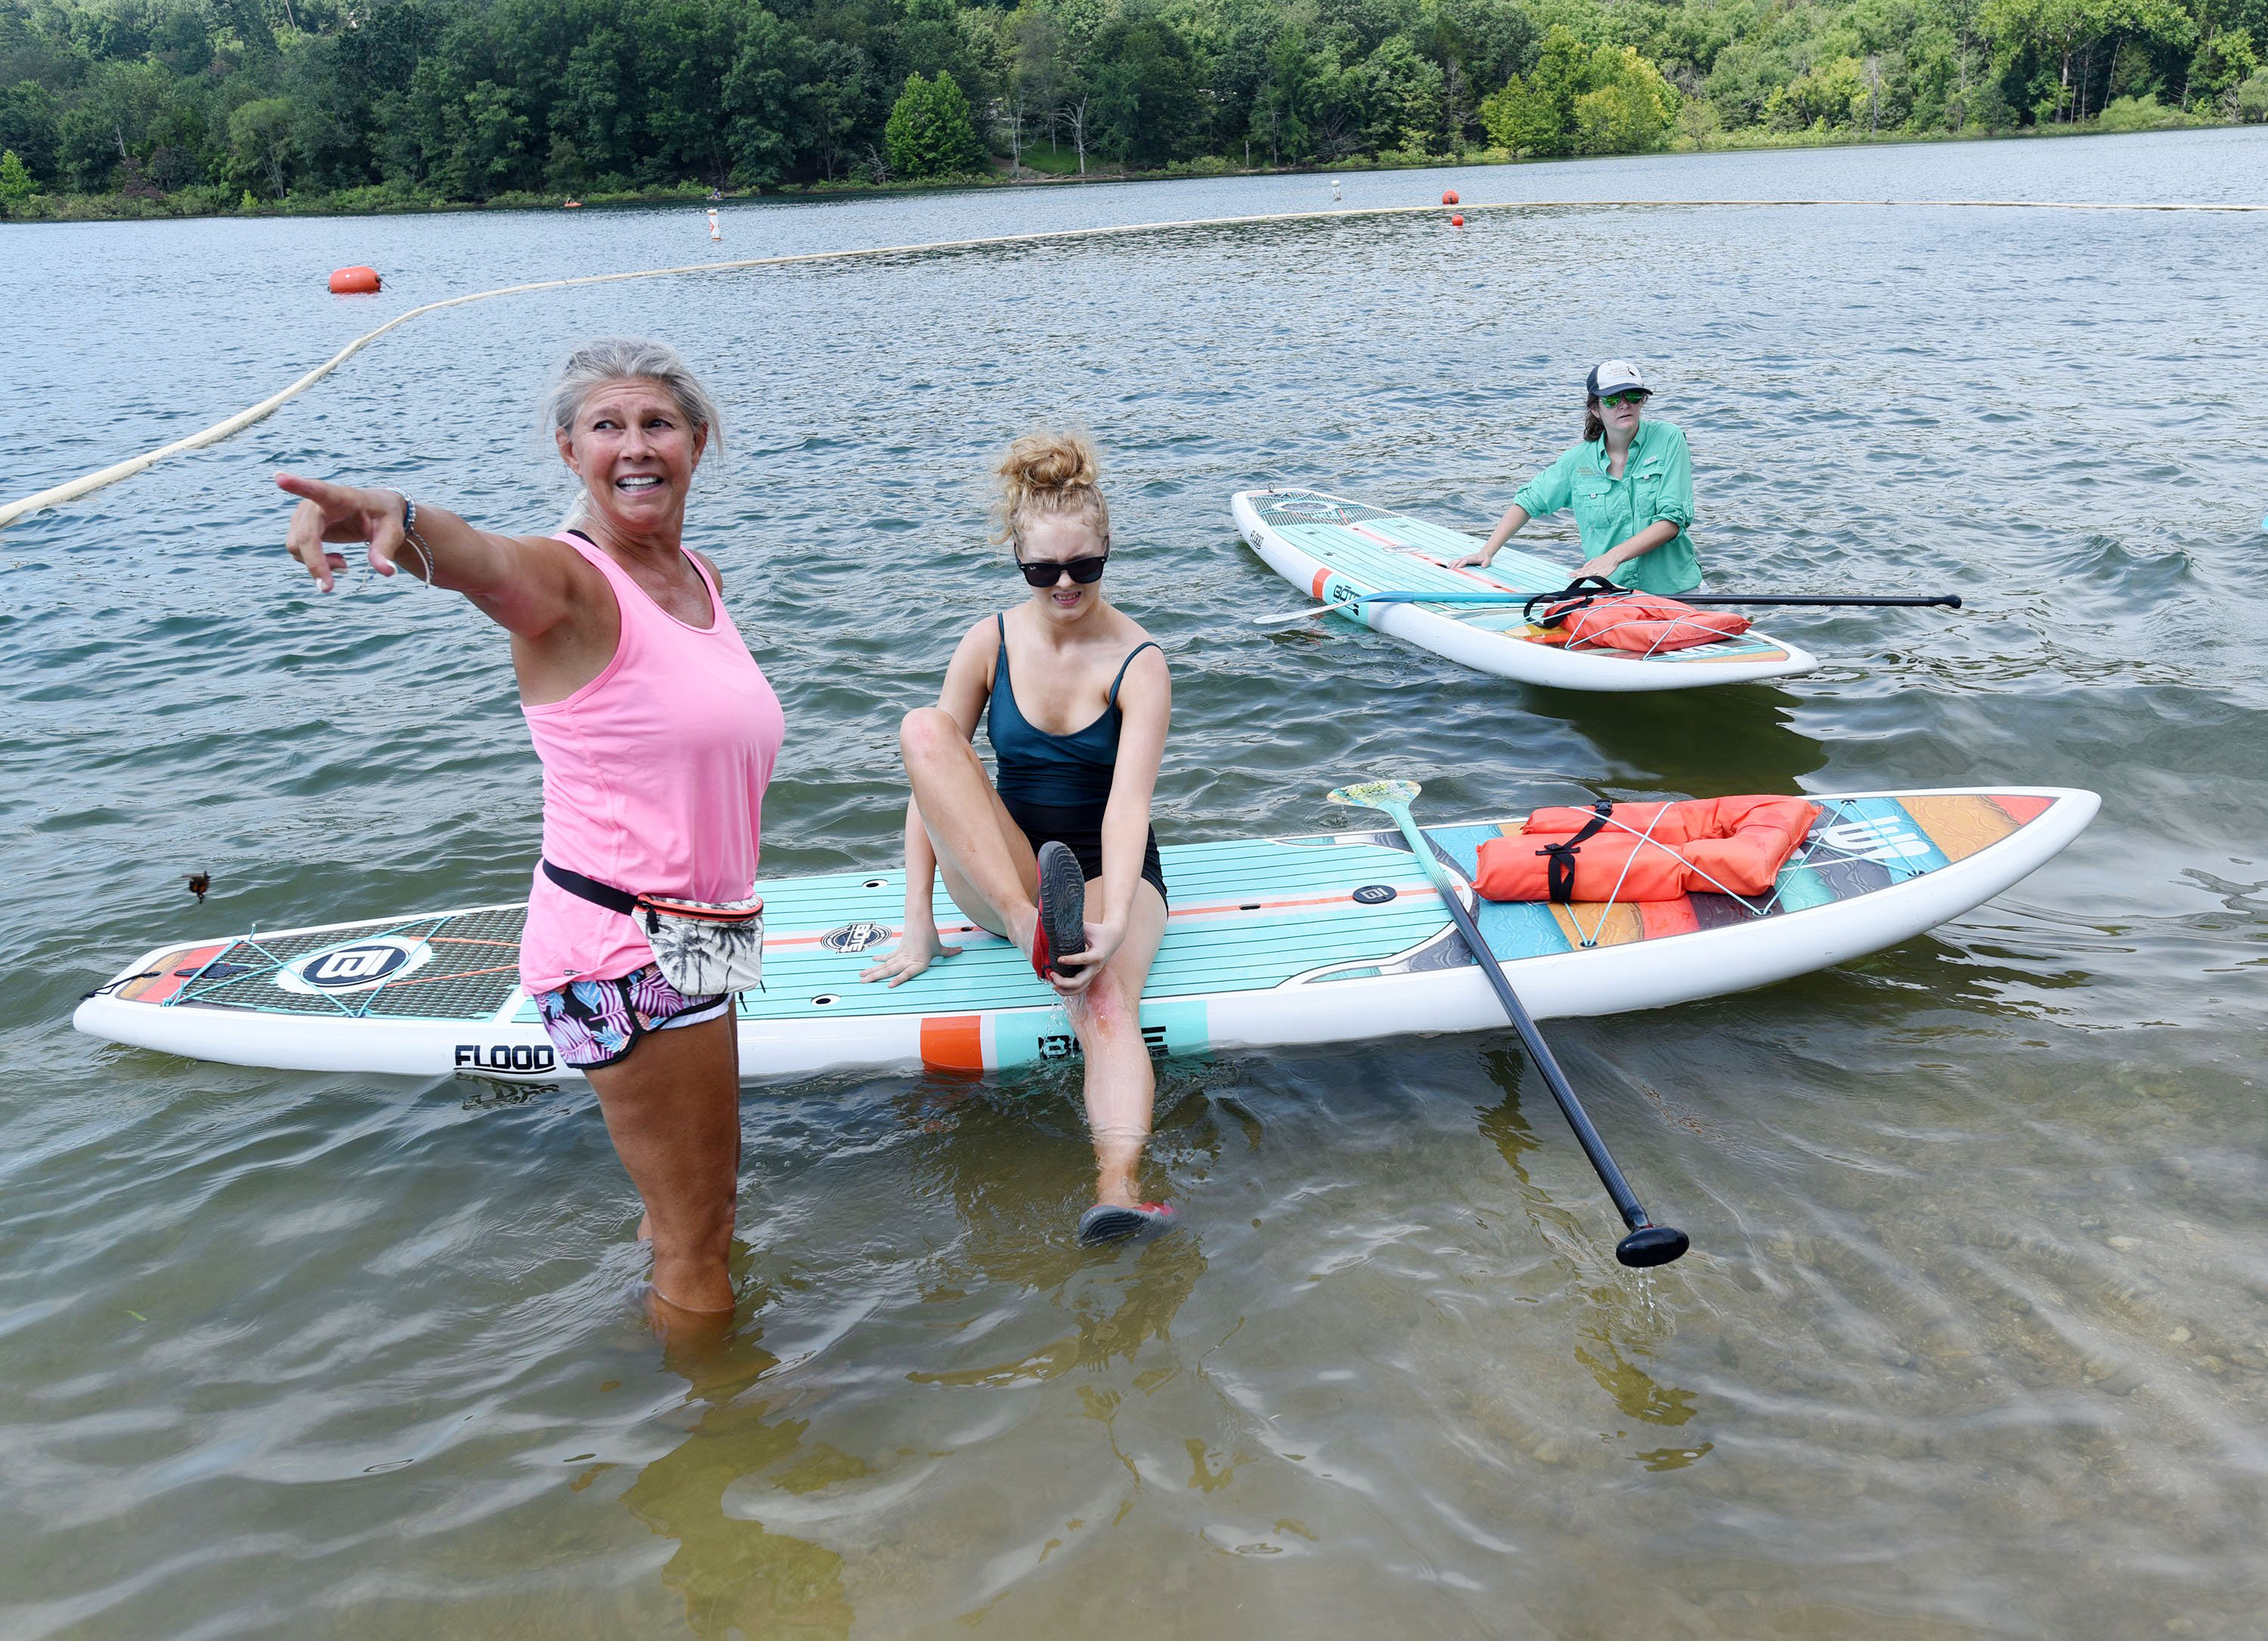 Gallery: Paddle boards and fire training